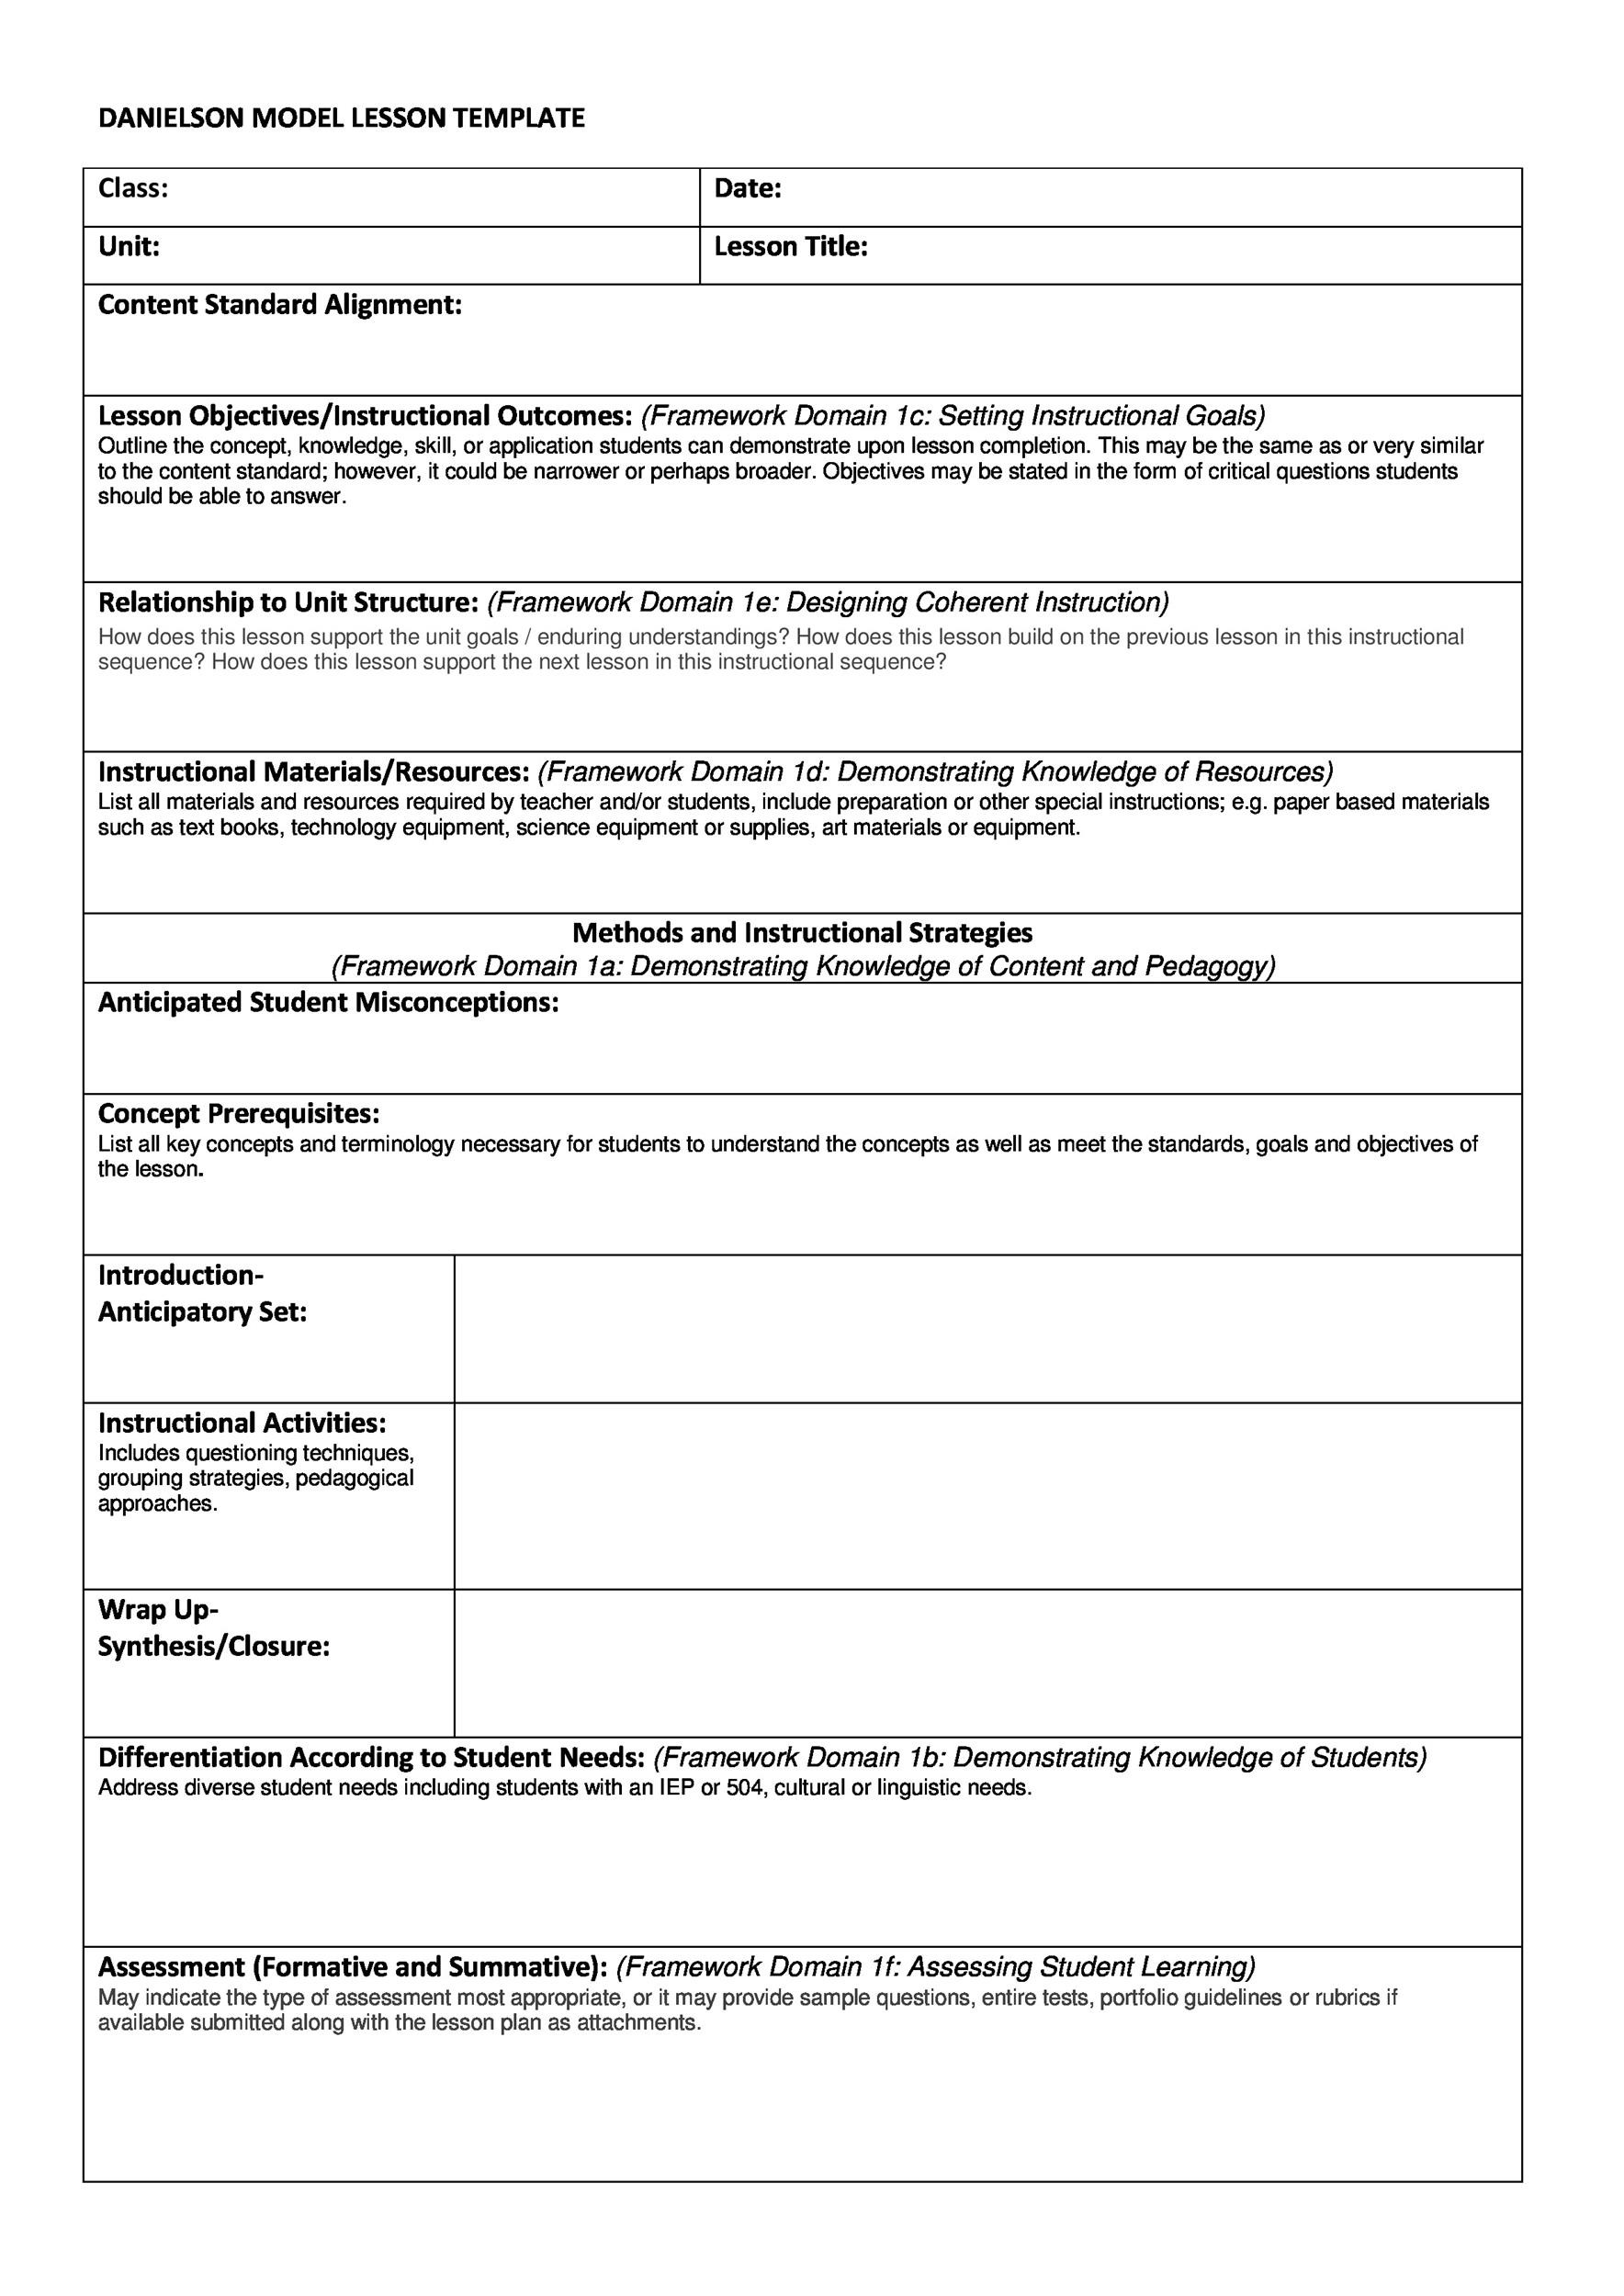 44 free lesson plan templates common core preschool weekly for Morning meeting lesson plan template